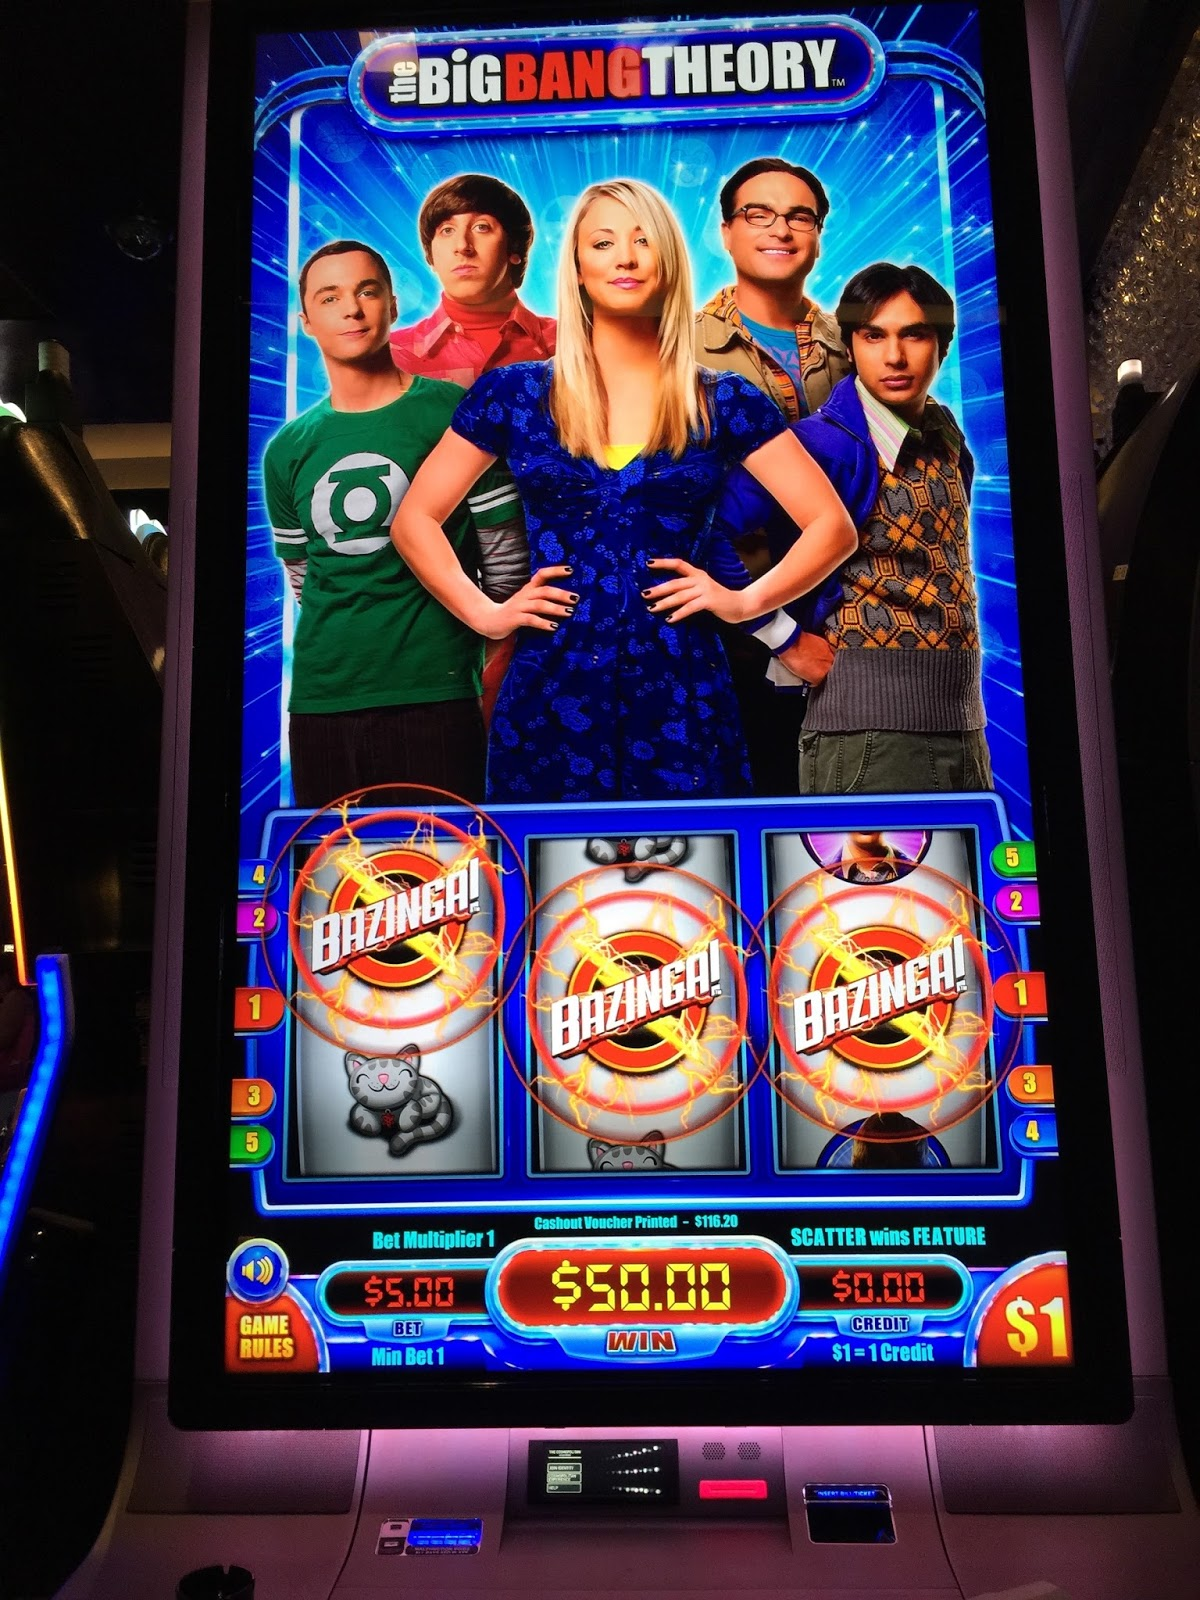 3 picture casino game